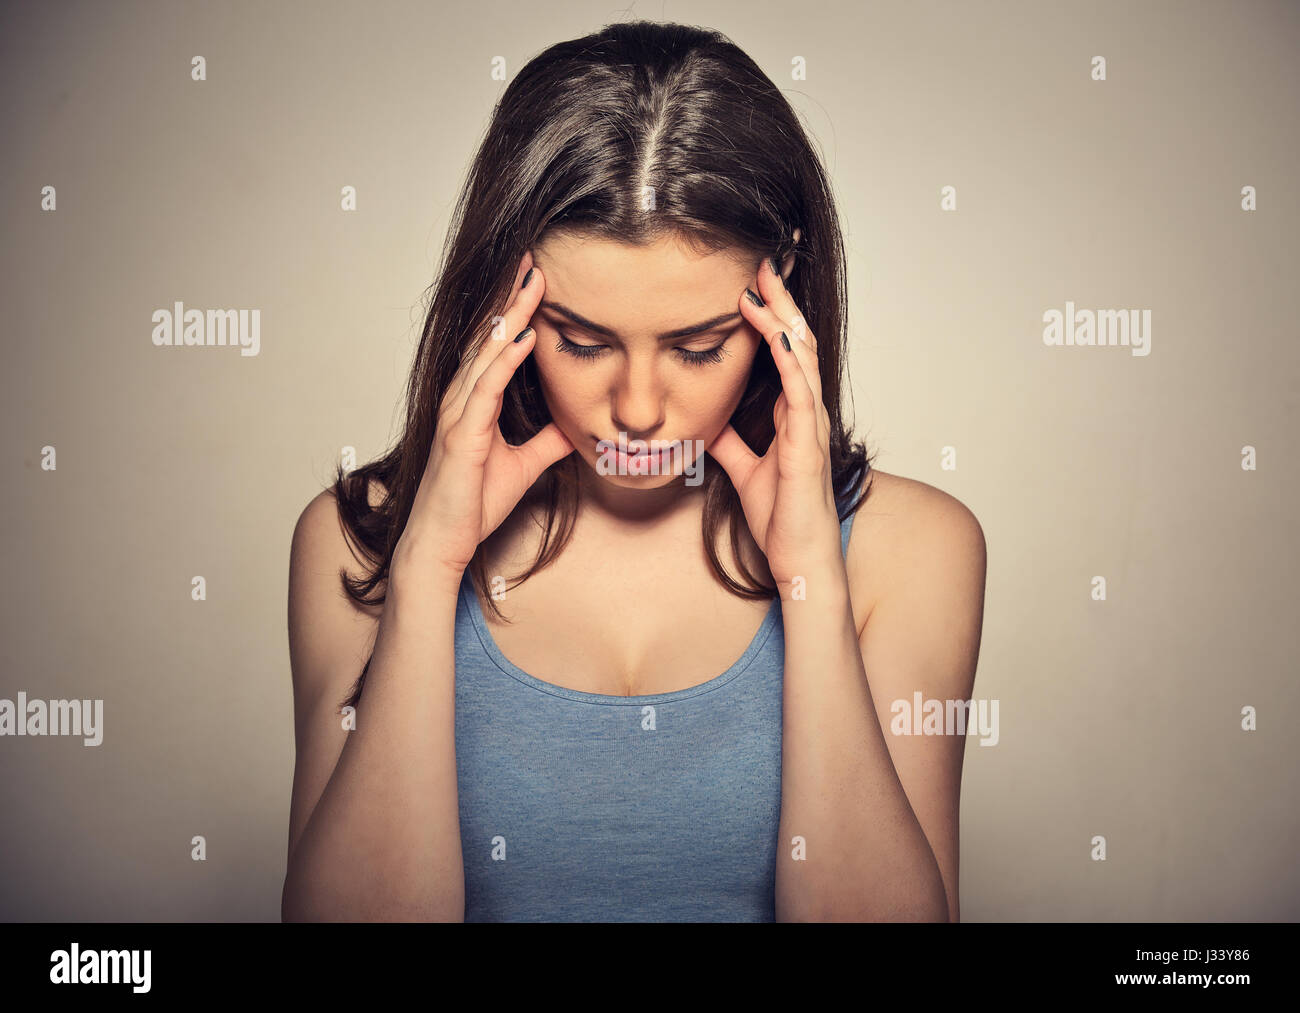 Closeup portrait sad young beautiful woman with worried stressed face expression looking down - Stock Image